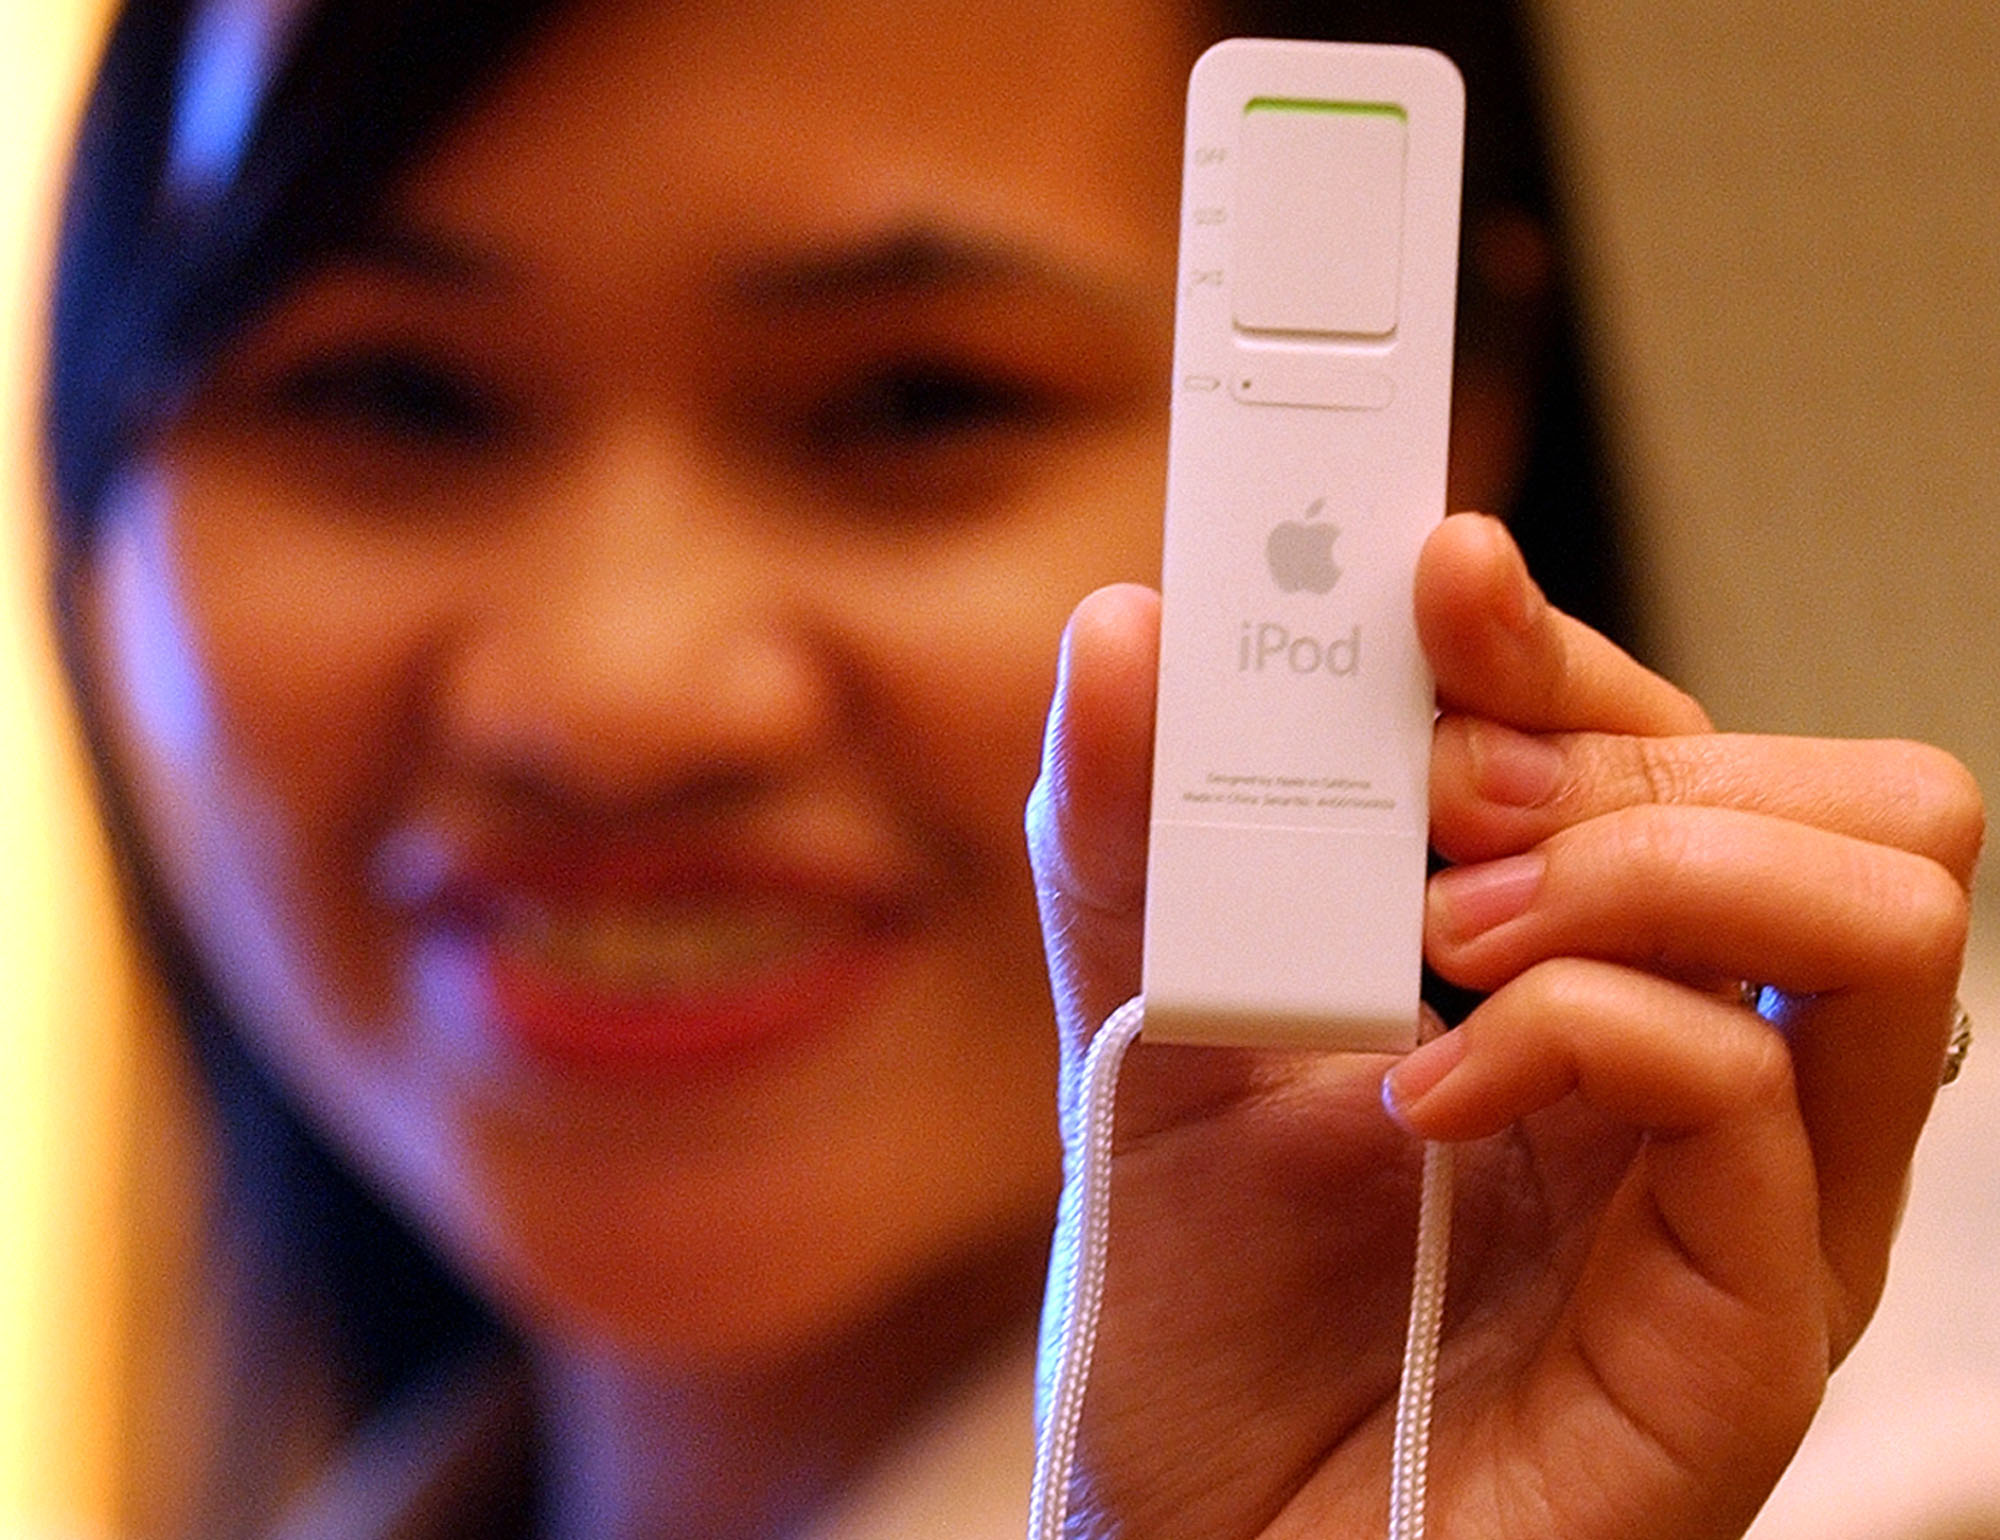 <div class='meta'><div class='origin-logo' data-origin='AP'></div><span class='caption-text' data-credit='AP Photo/Aaron Favila'>Vivian Pasia, a sales manager for a company that distributes Mac products, shows the new Apple iPod Shuffle on Tuesday, Jan. 25, 2005.</span></div>